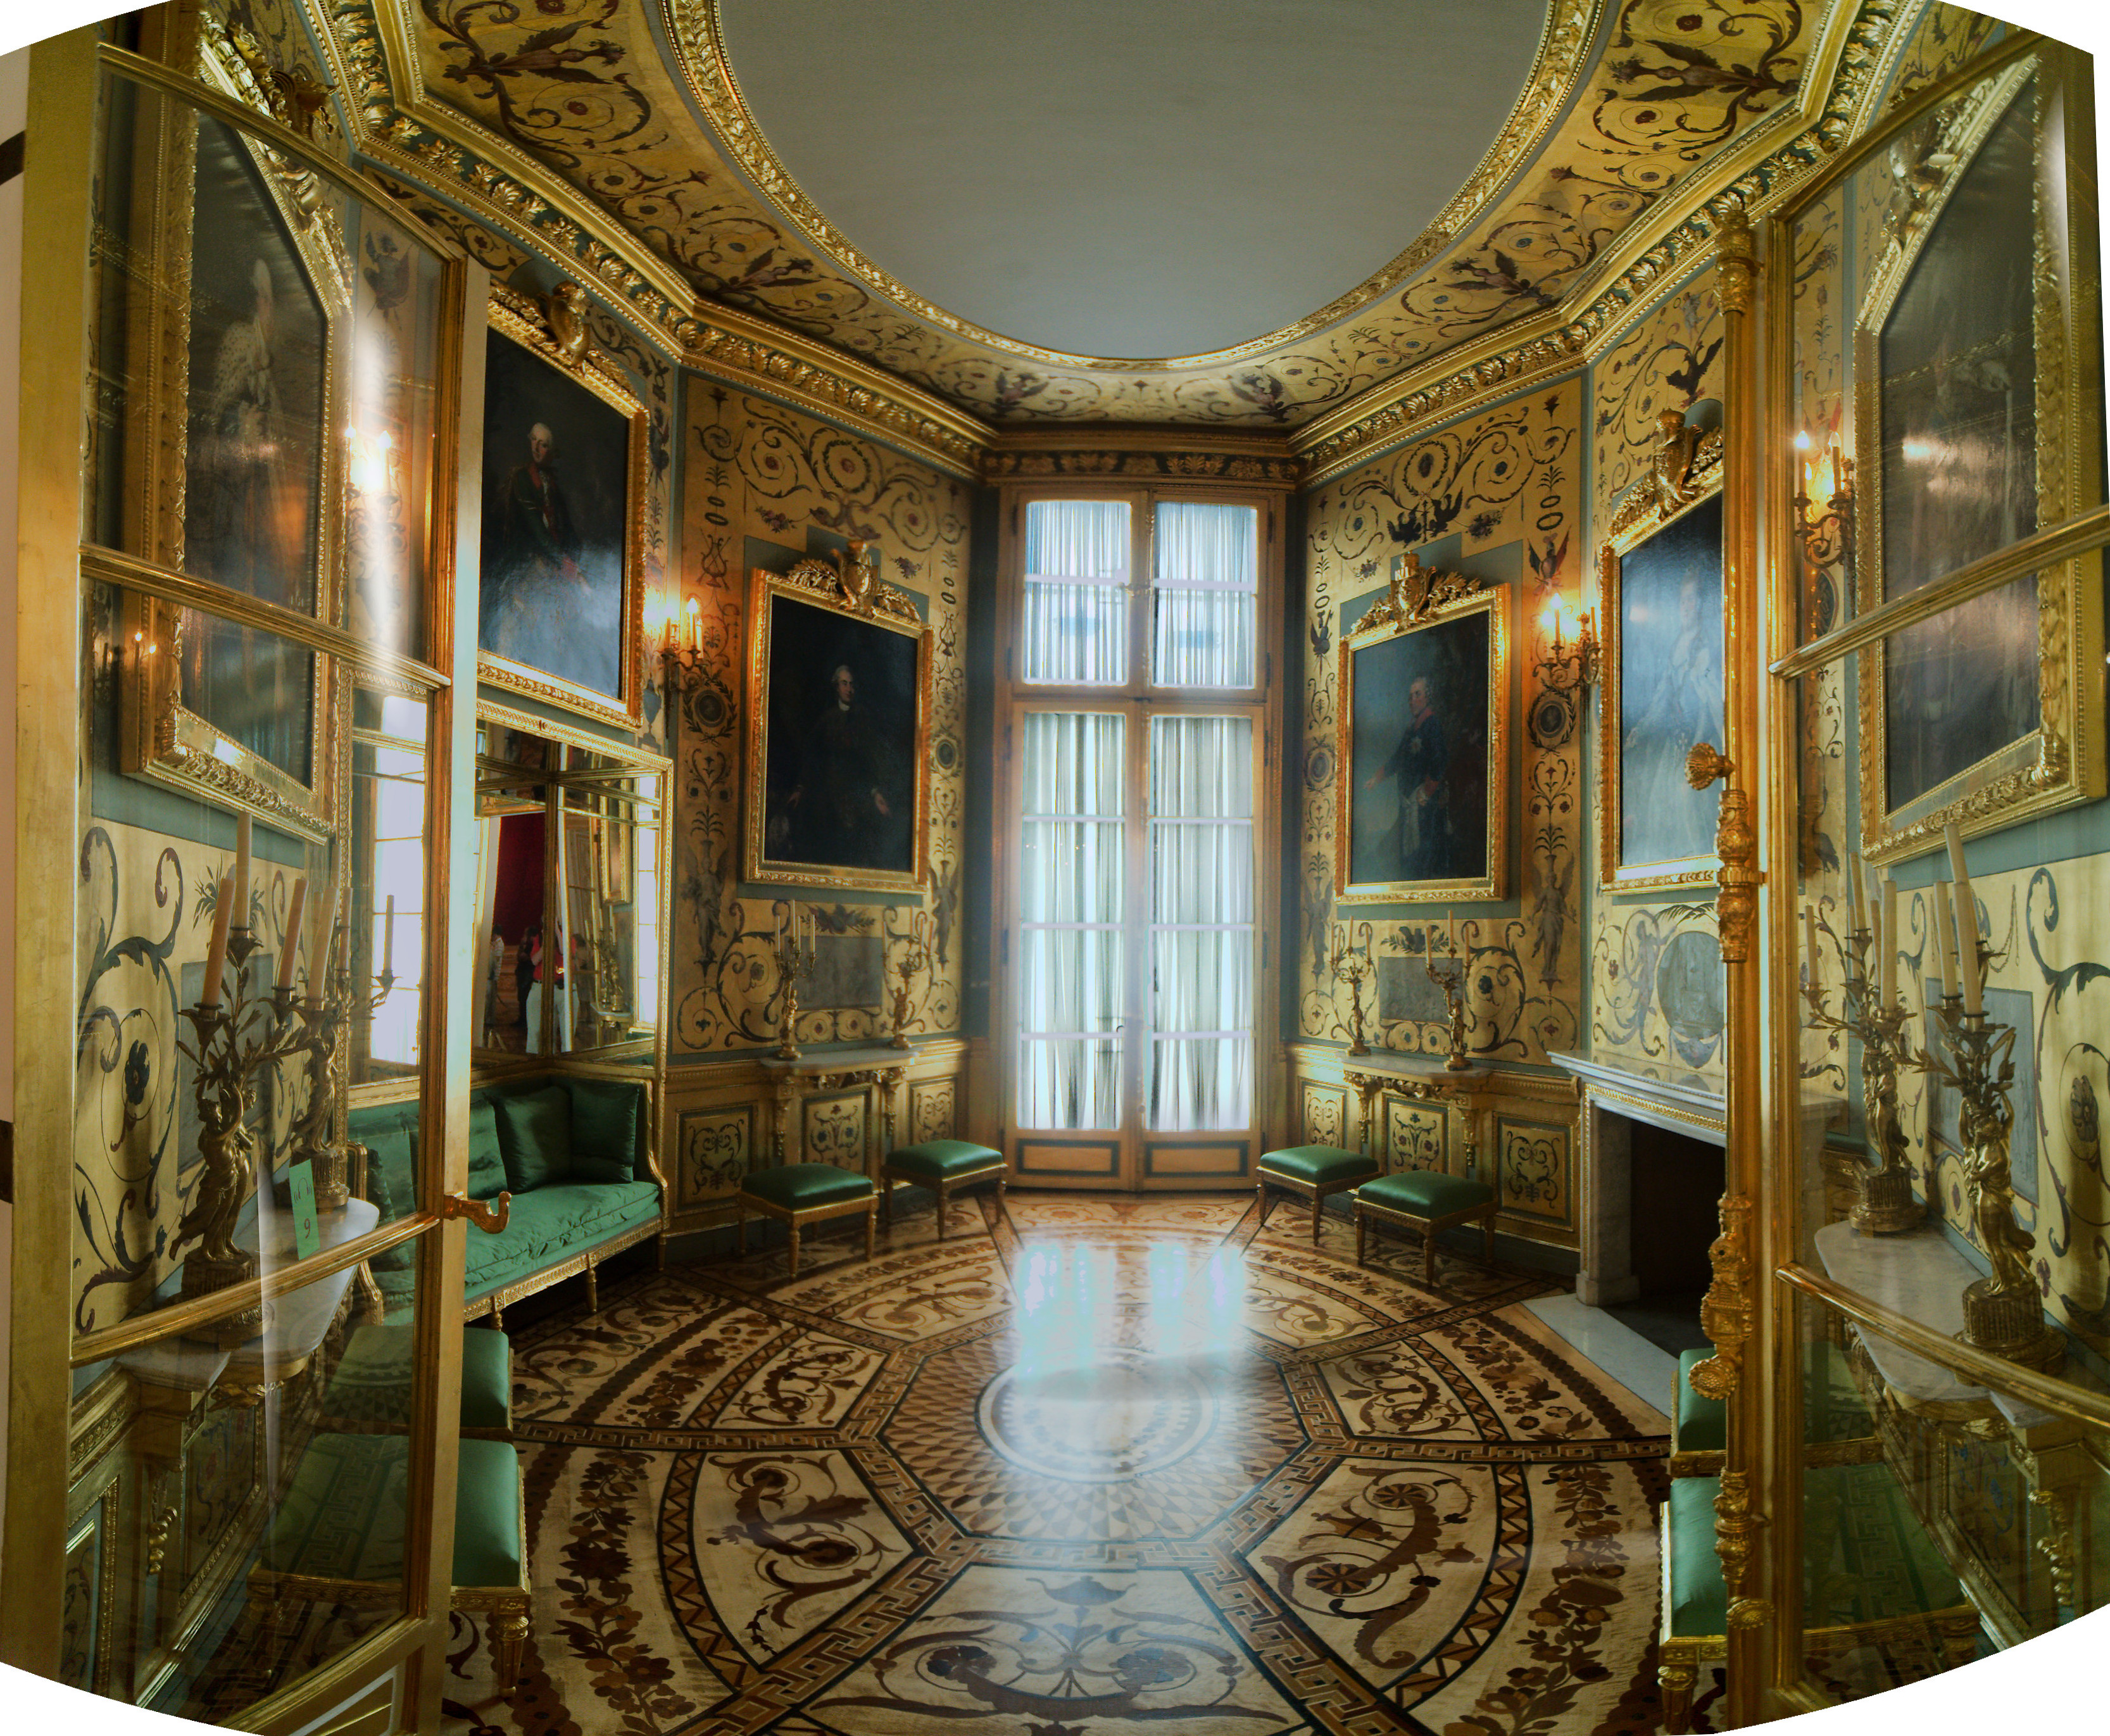 File:Conference Room (Royal Castle, Warsaw)-01.jpg - Wikimedia Commons